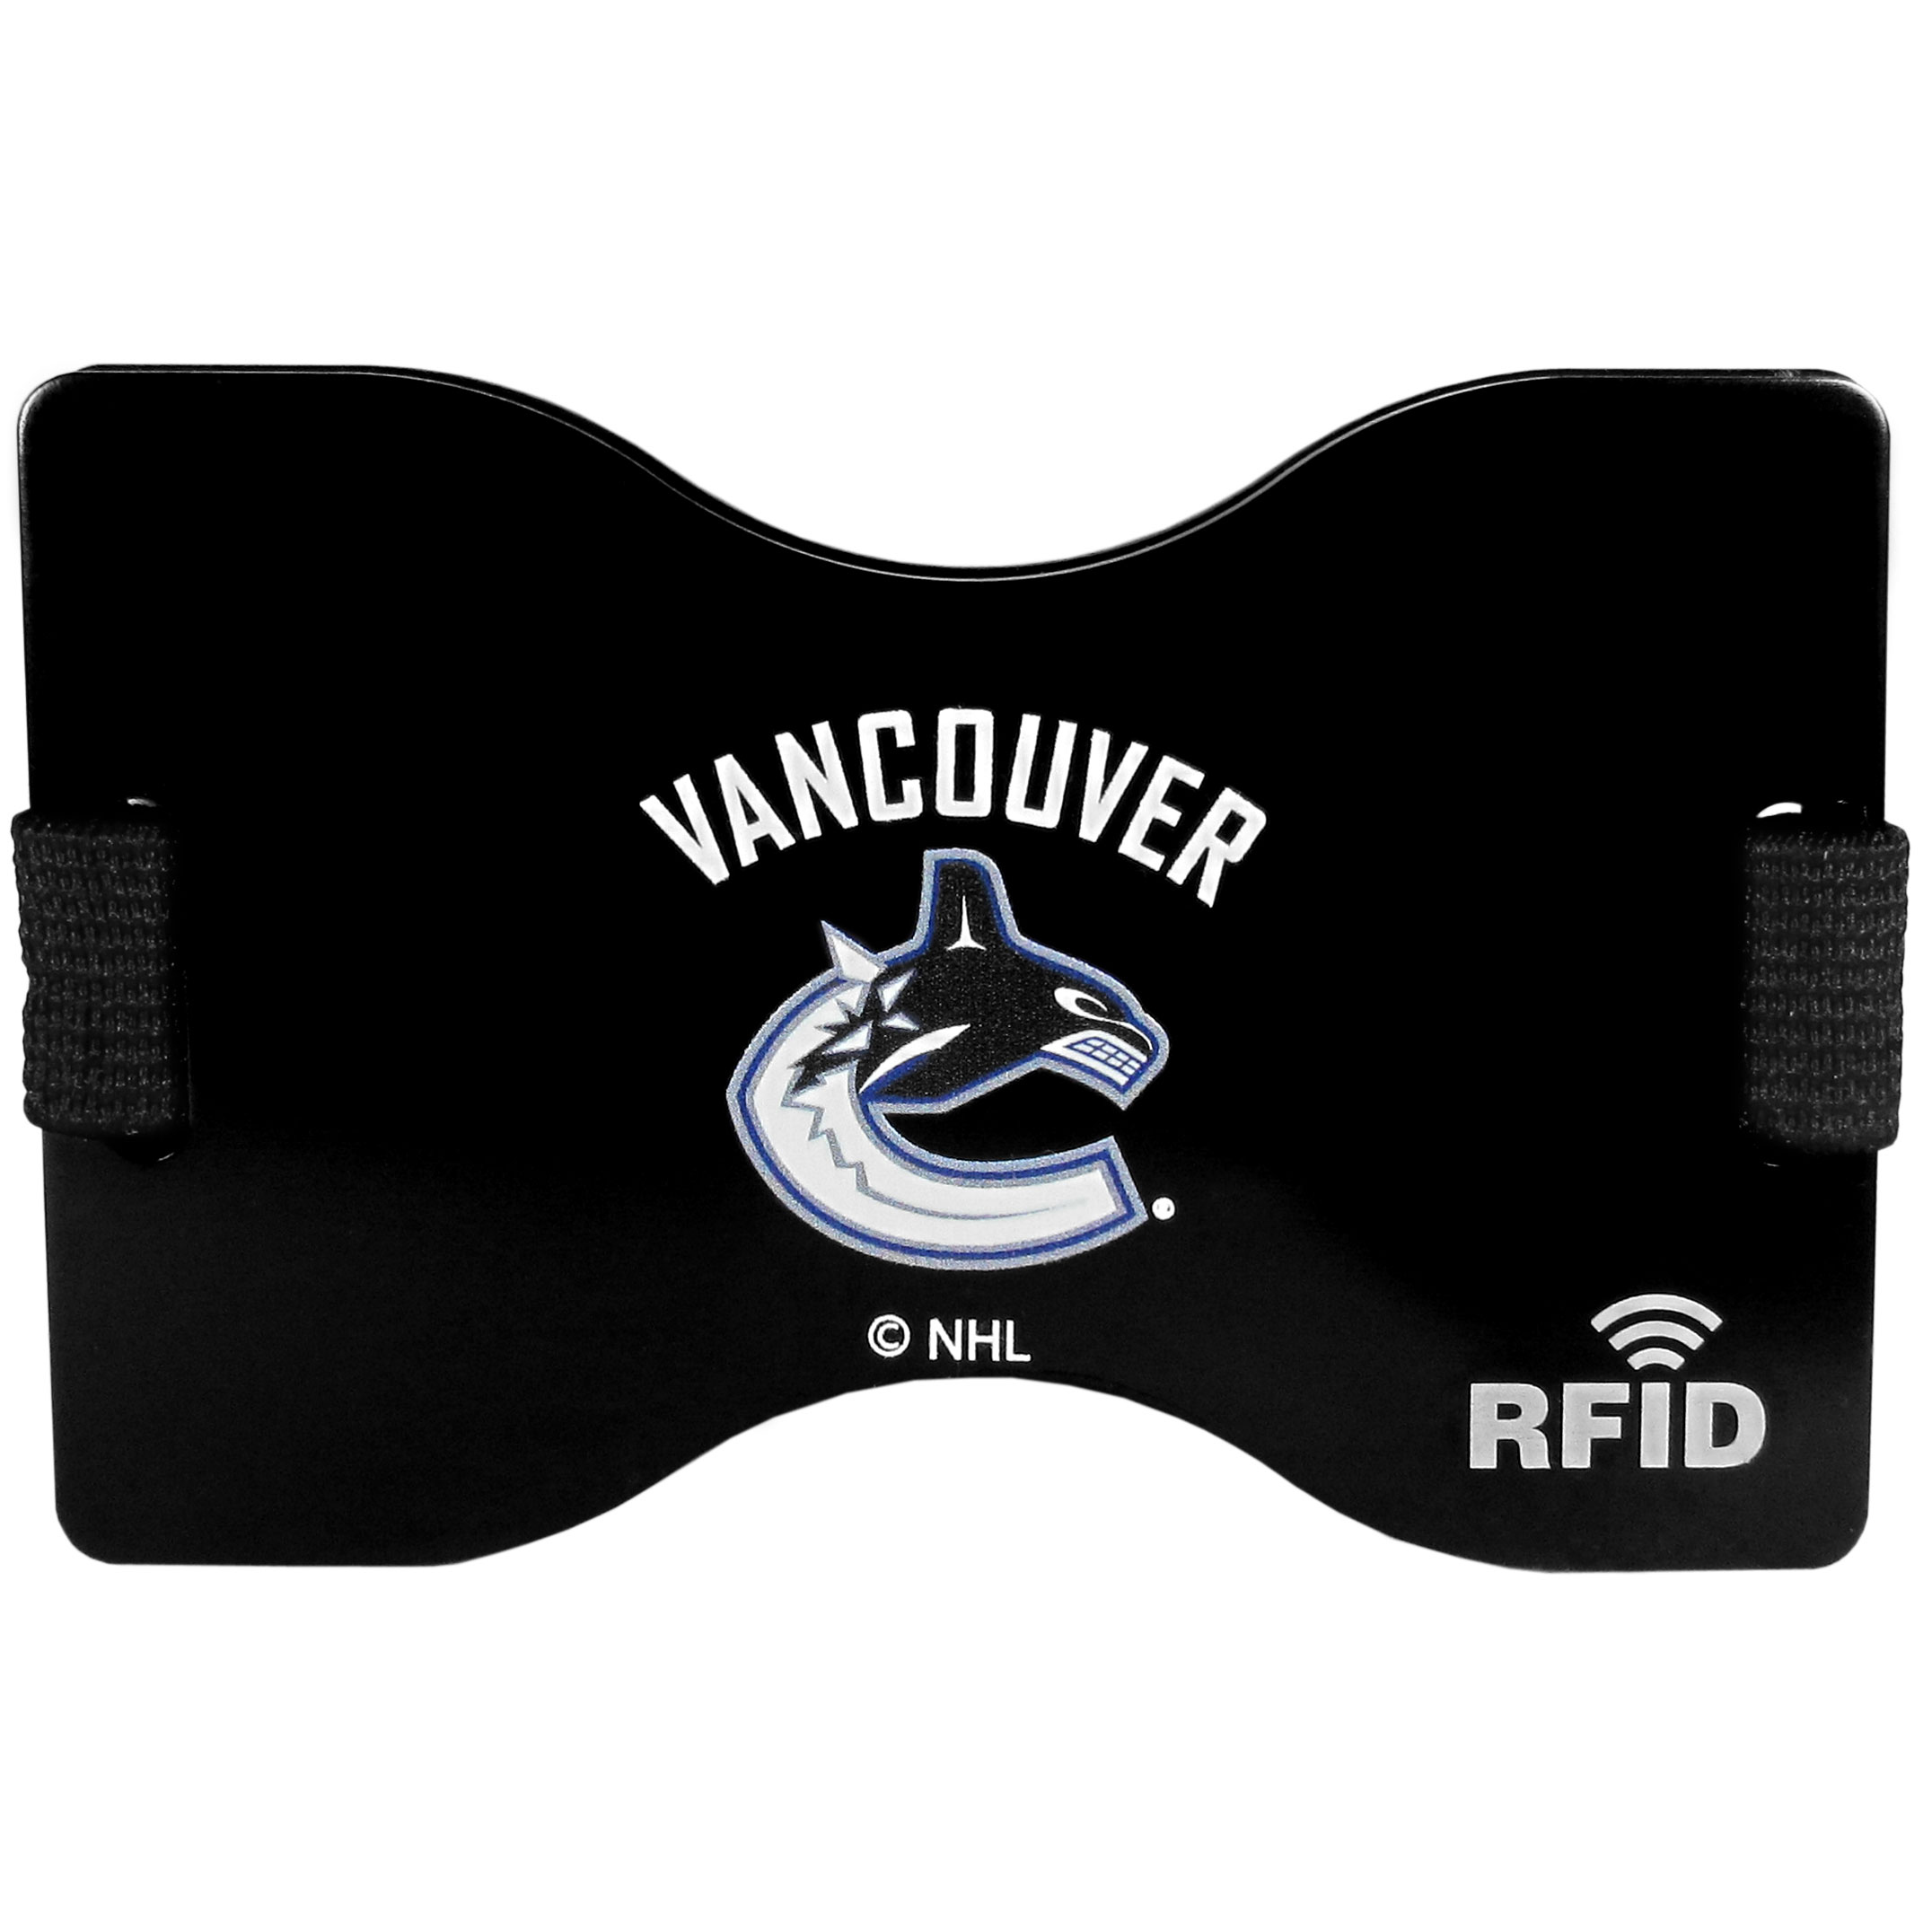 Vancouver Canucks® RFID Wallet - Our RFID blocking wallet and moneyclip is designed to help protect you from falling victim to a particular brand of electronic pickpocketing call RFID skimming. RFID skimming allows a criminal to scan your cards with chips and read your personal information. This attractive Vancouver Canucks® wallet protects against this threat while also meeting all of your slim wallet needs. Store your cards in between the expandable RFID plates and store you cash in the handy outer money clip.